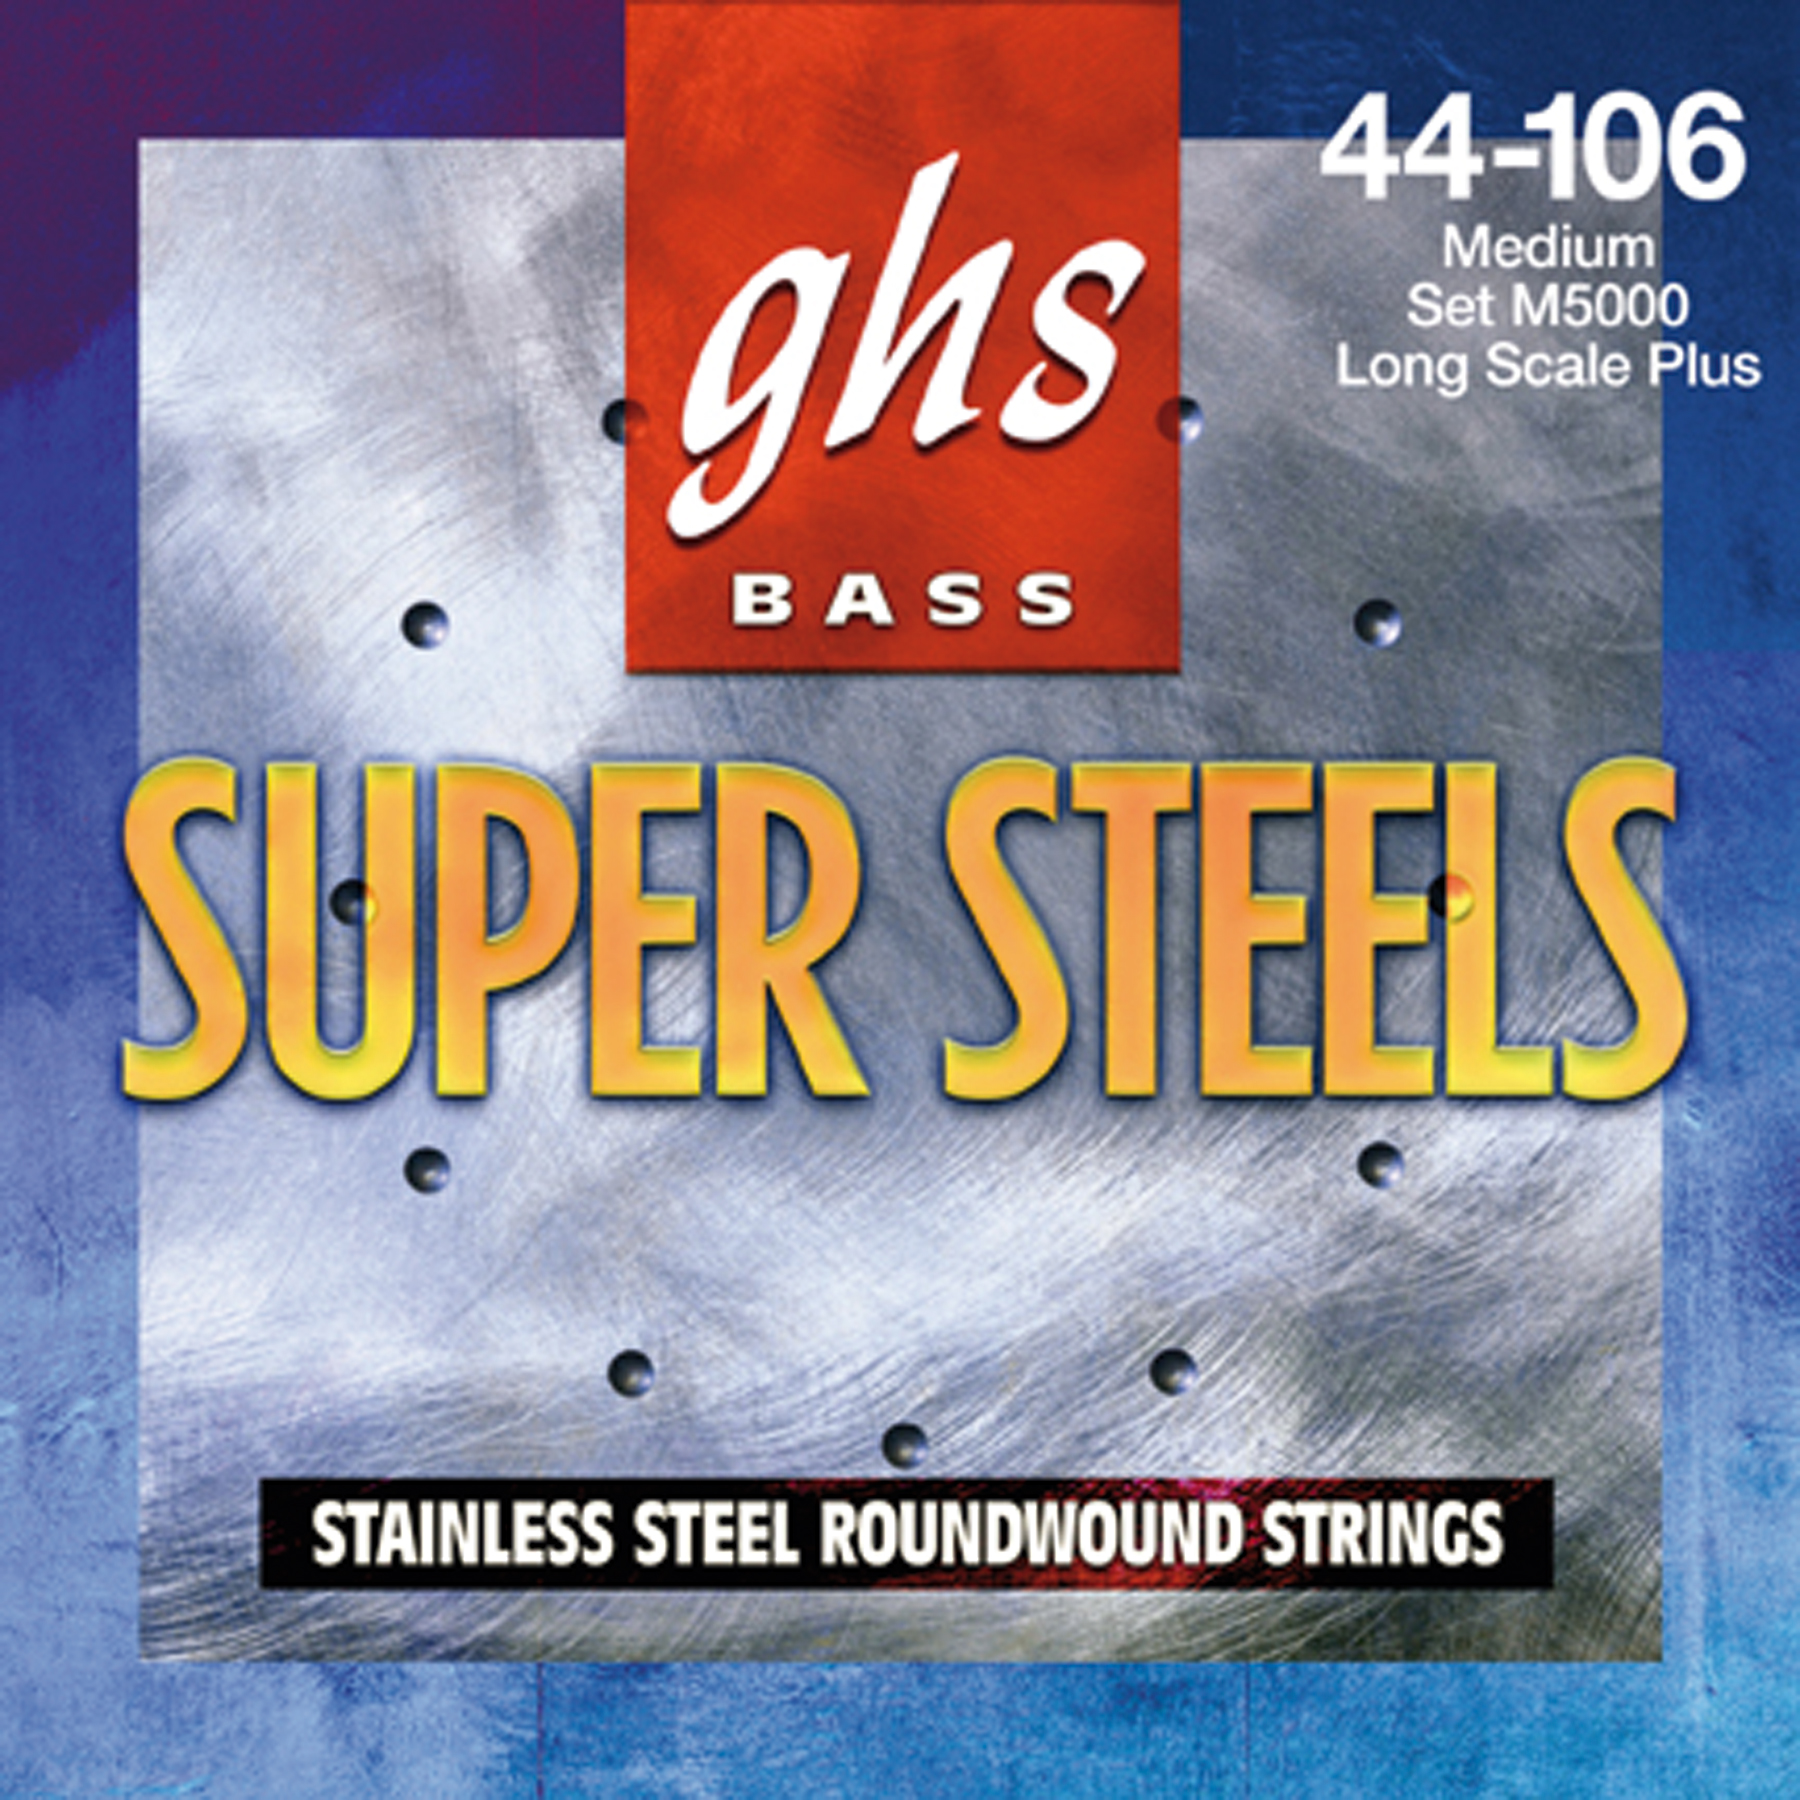 STB40 Rivestita Super Steel